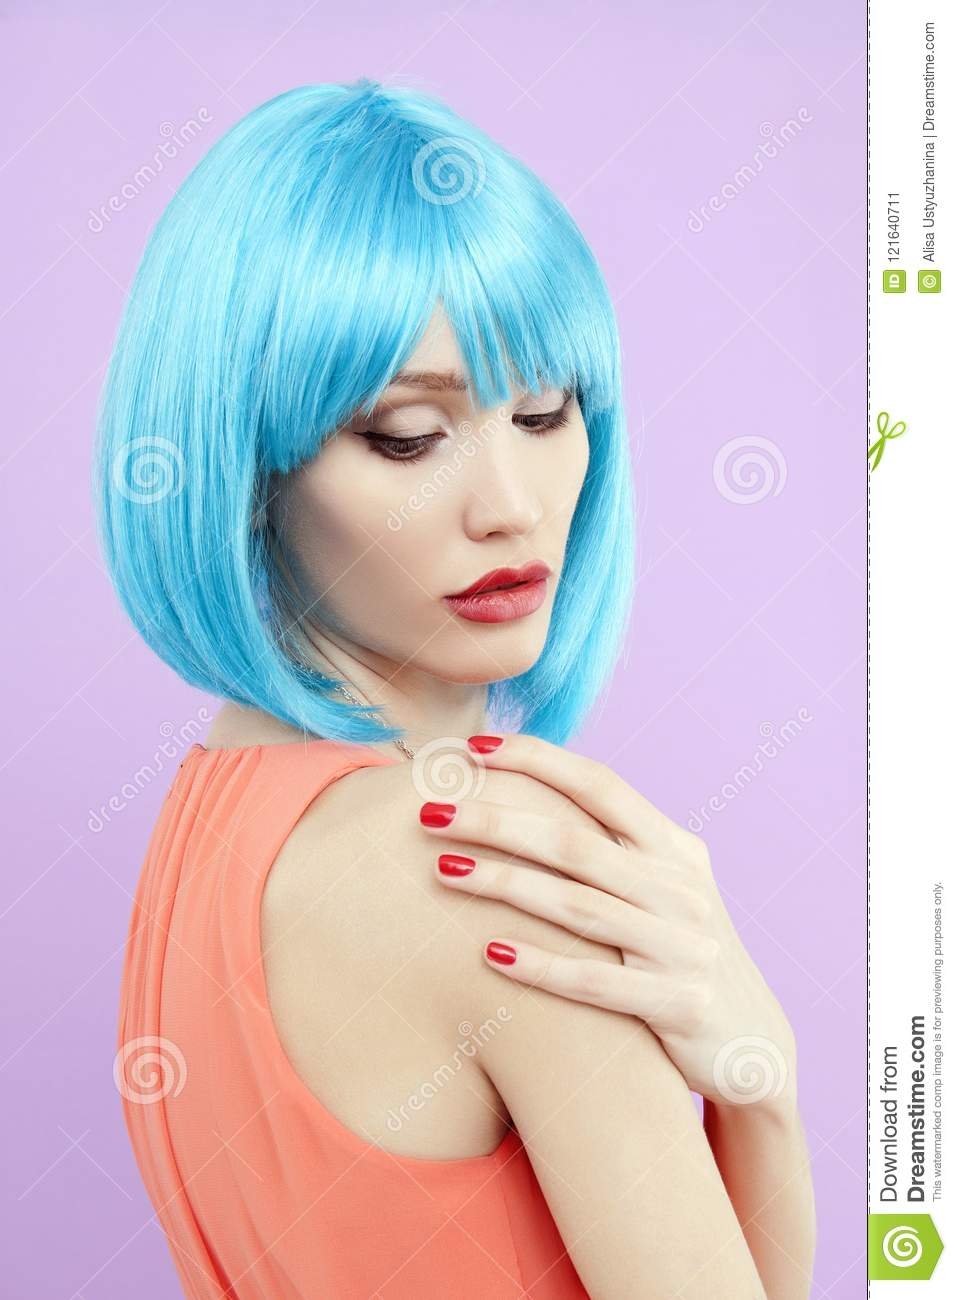 Girl With Blue Hair Style And Make Up Stock Image Image Of Haircut